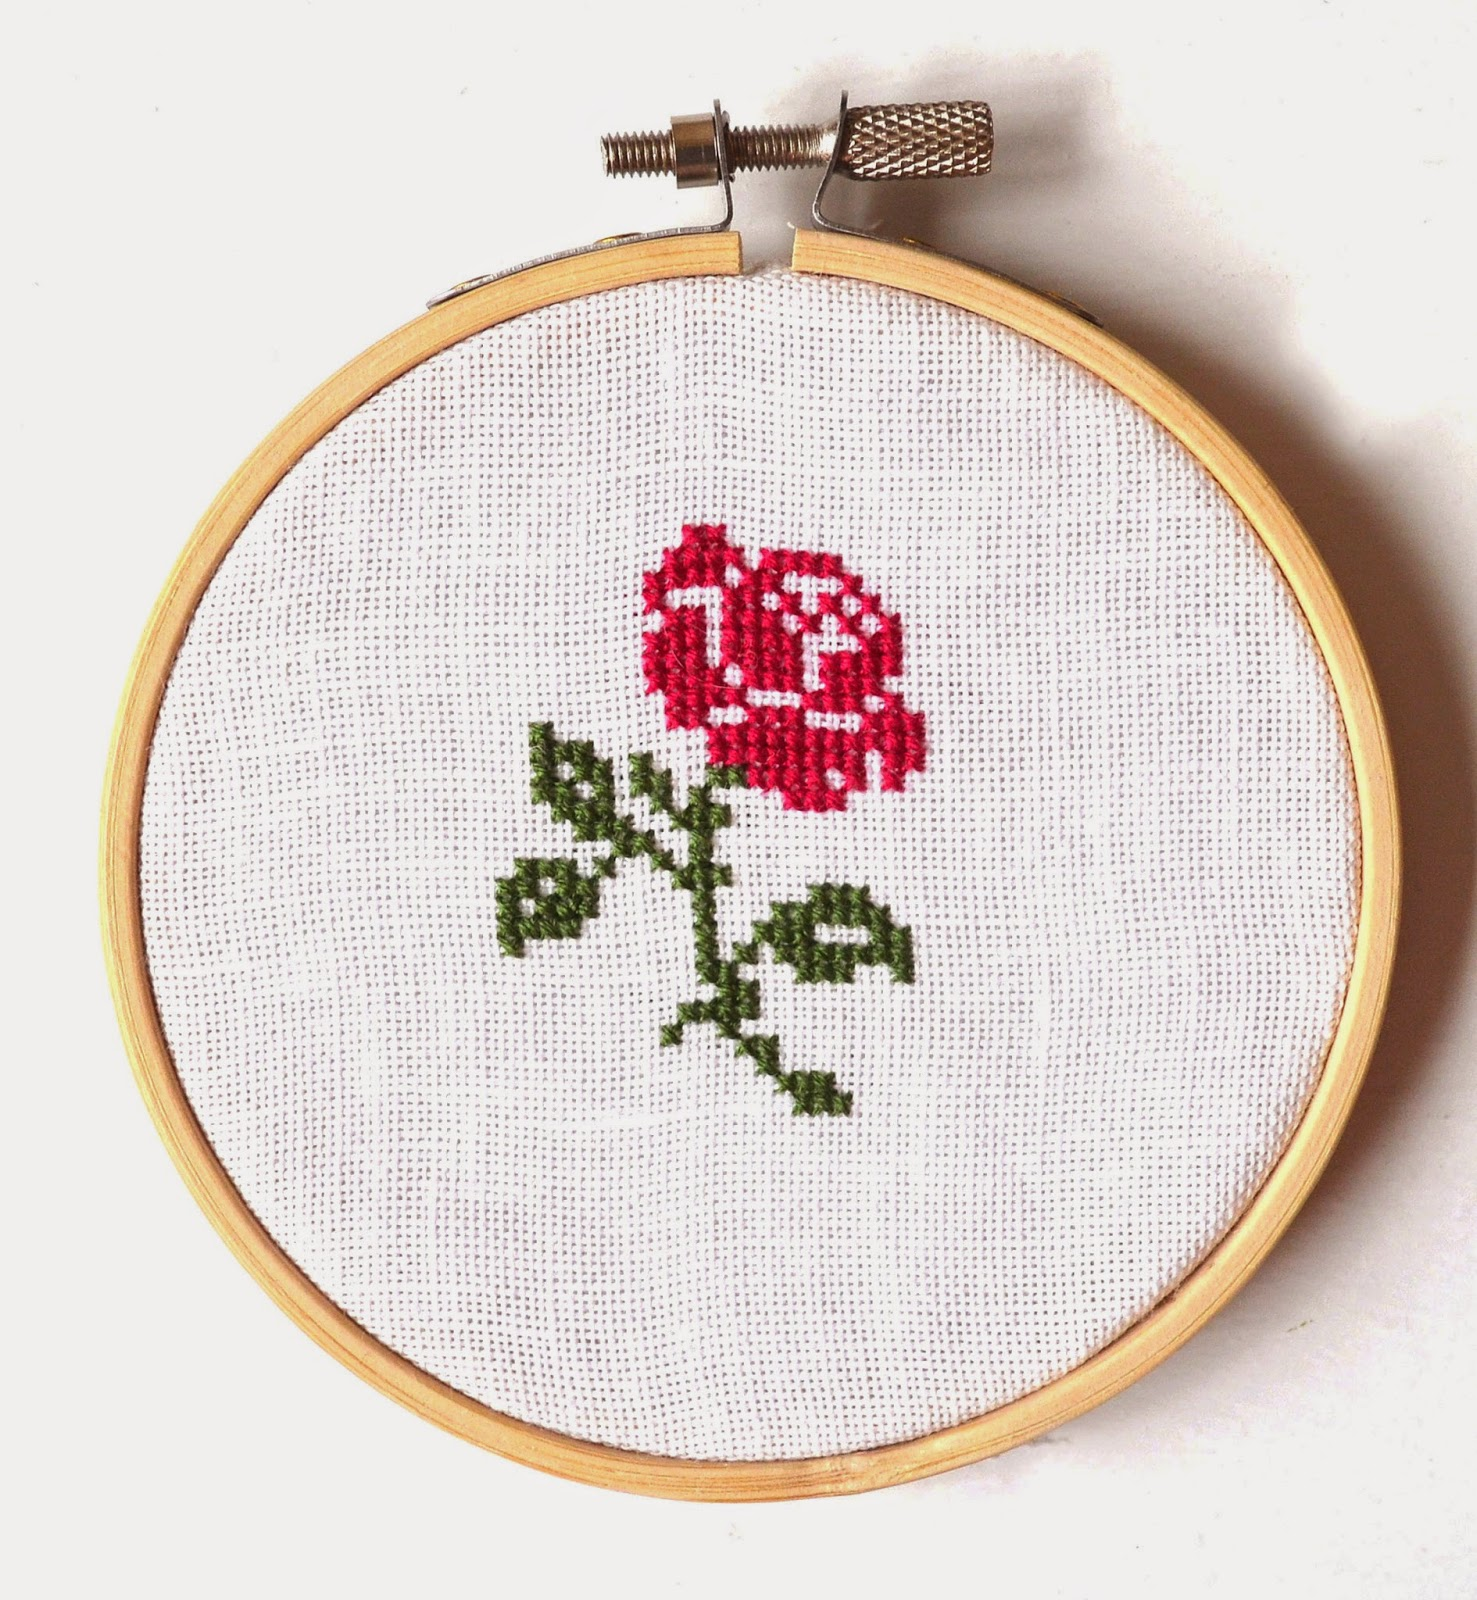 Sew french rose pattern